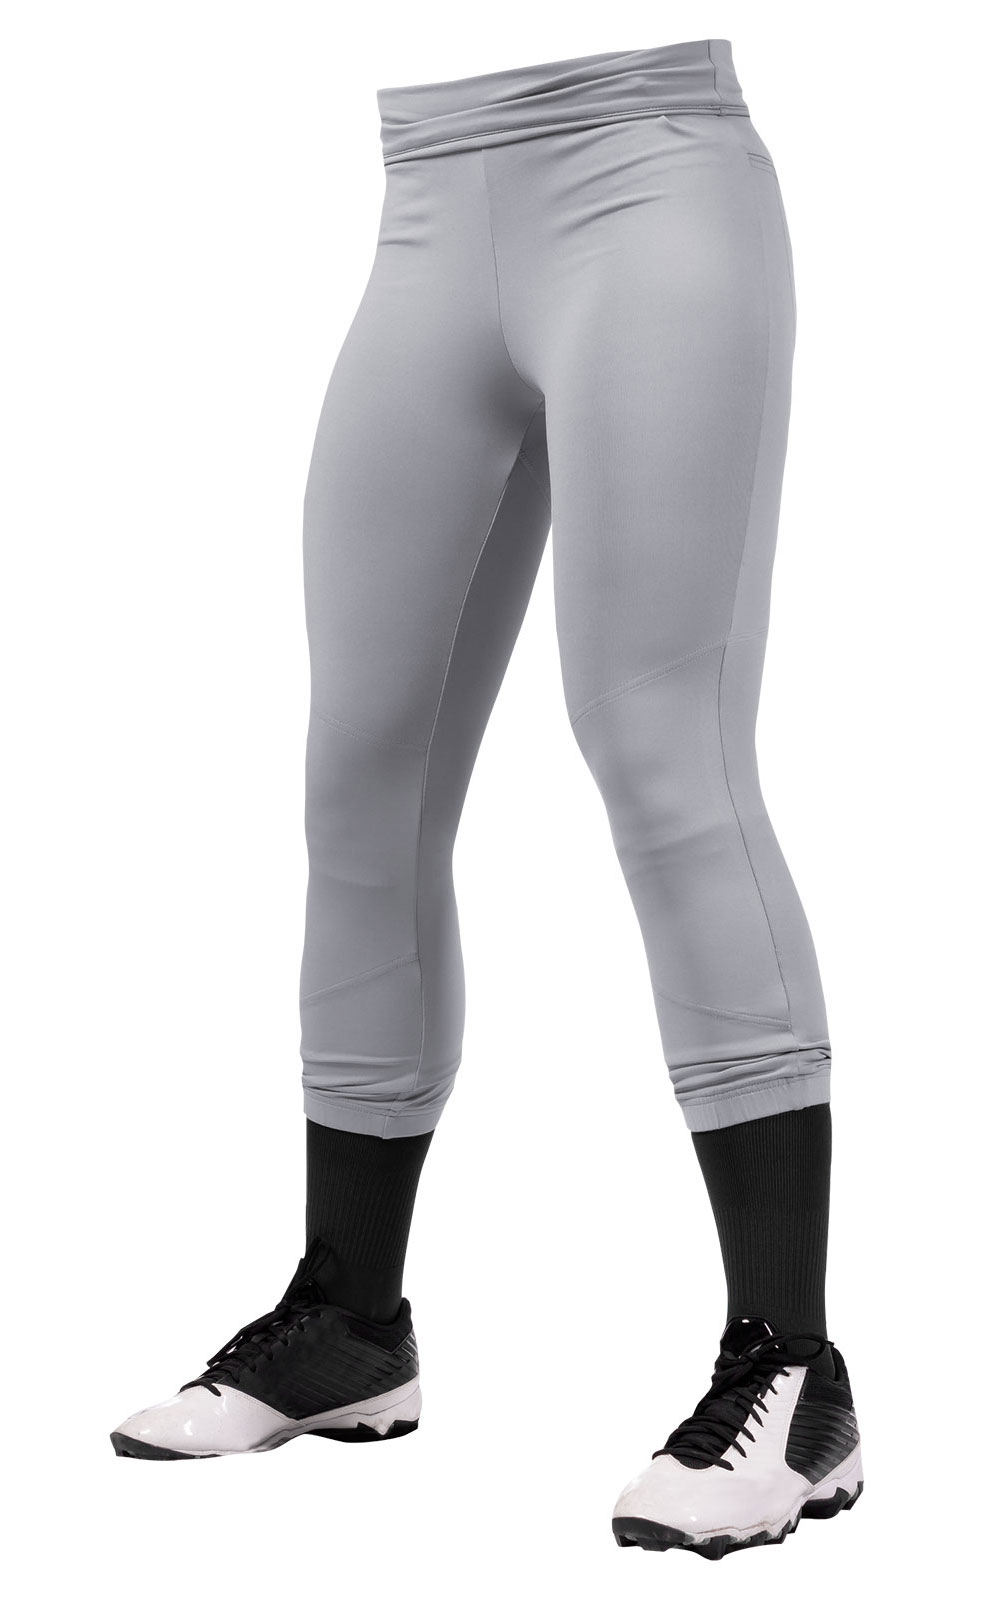 Ladies Hot Shot Yoga Style Softball Pant